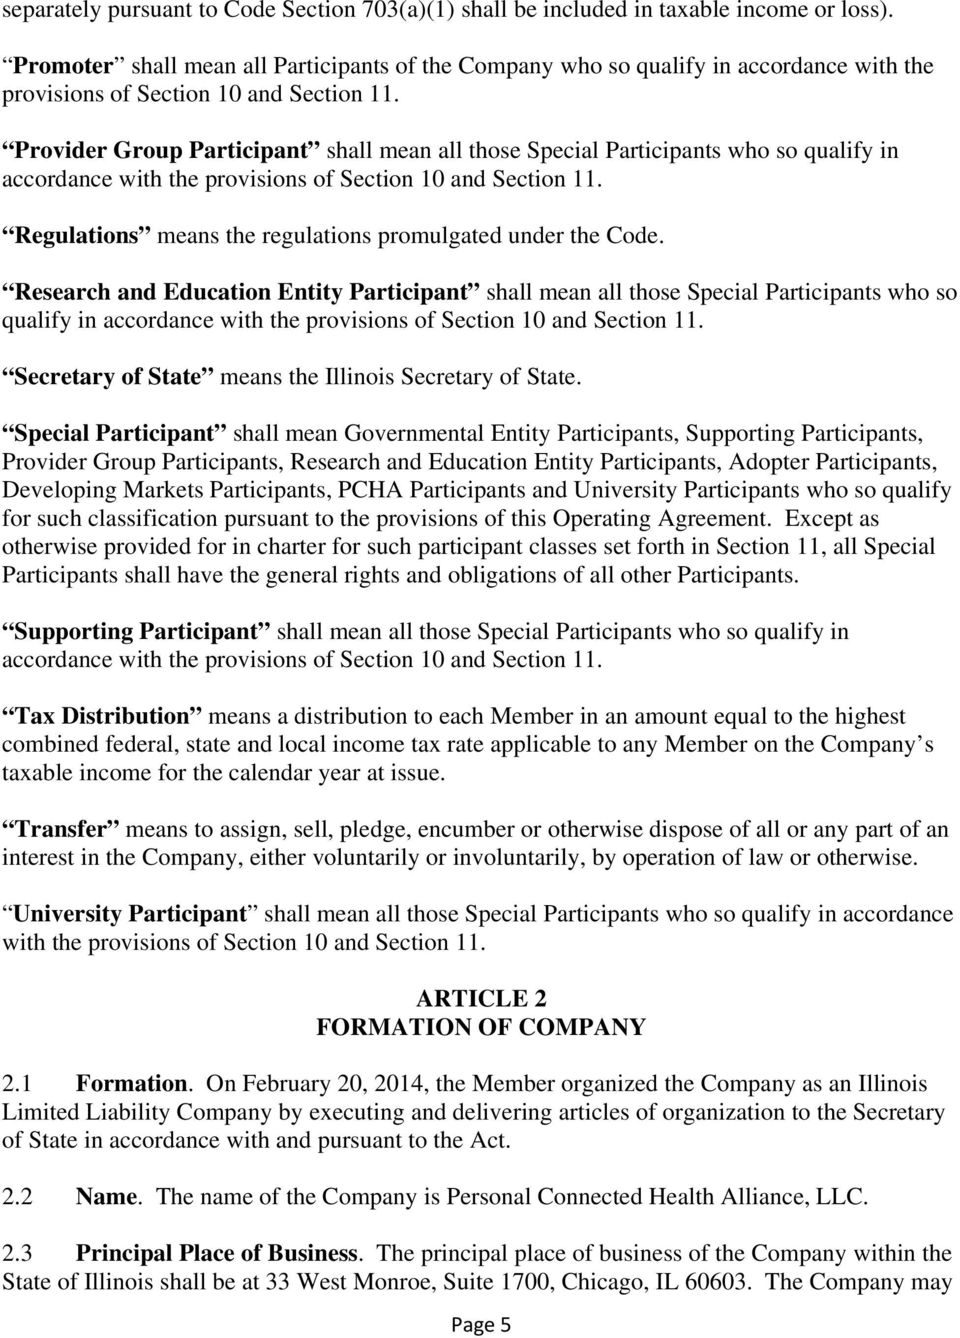 Amended And Restated Operating Agreement Of Personal Connected